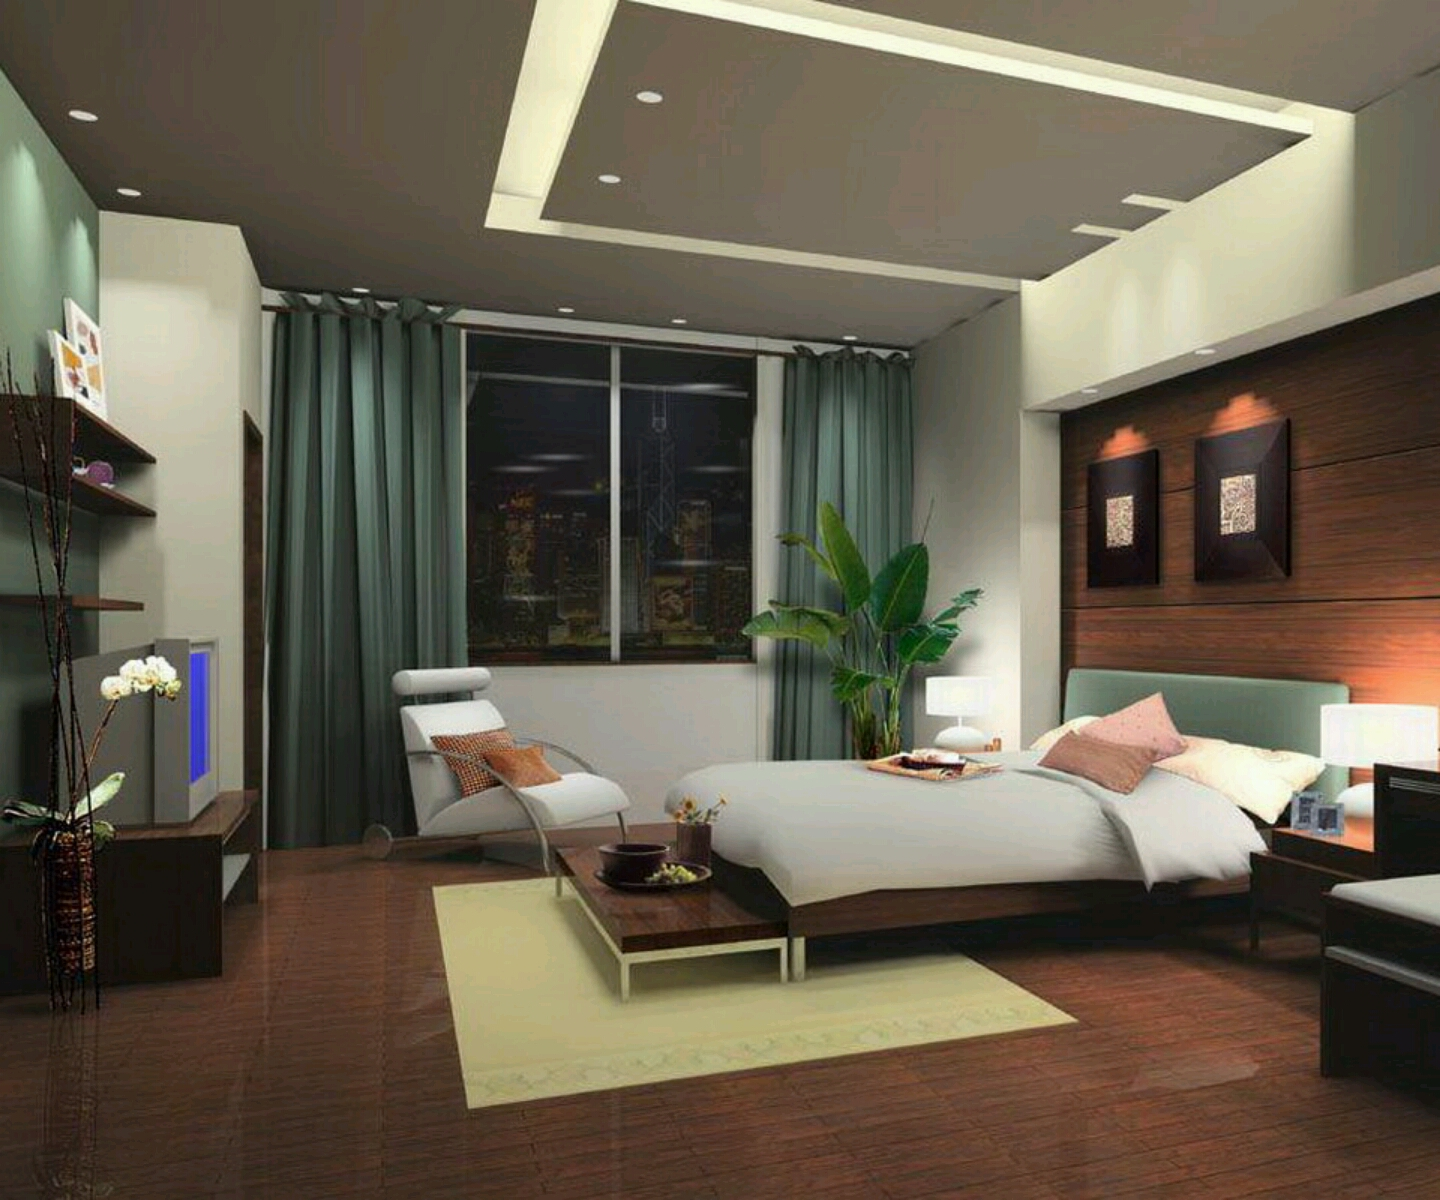 New home designs latest modern bedrooms designs best ideas for Home interior design room